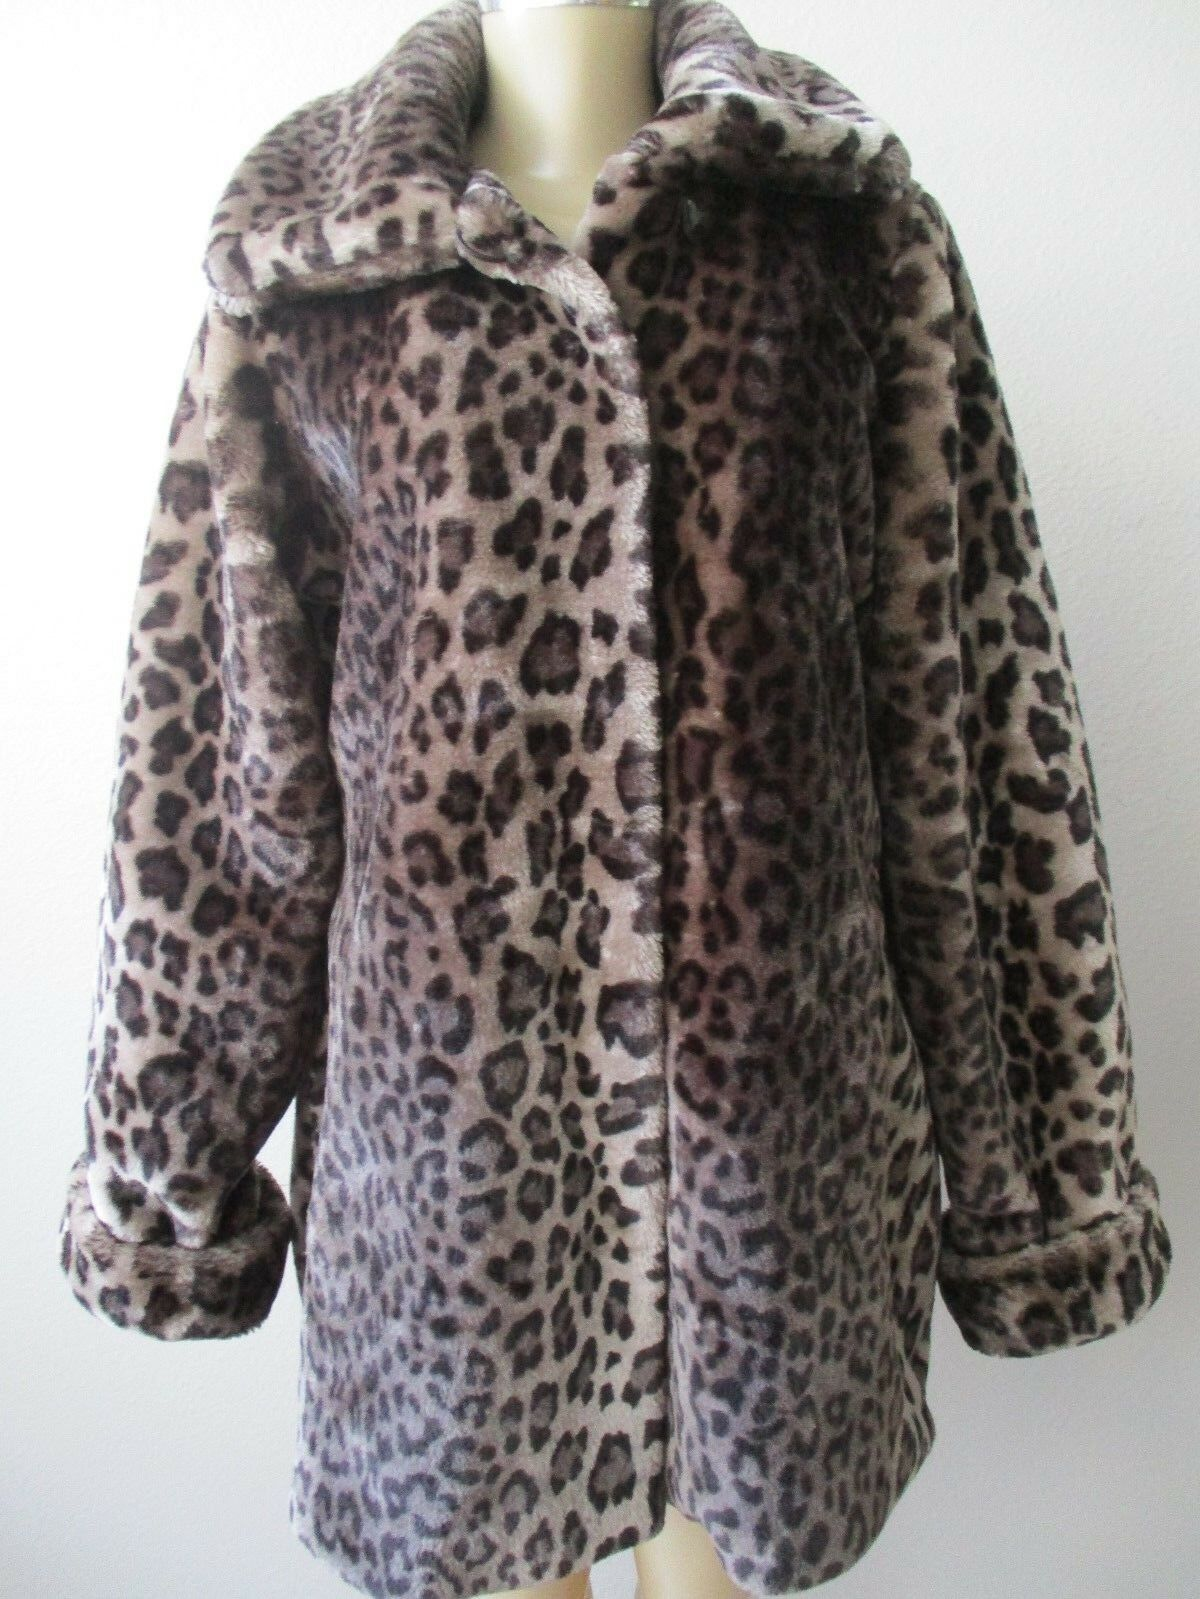 DENNIS BY DENNIS BASSO ANIMAL DESIGN FAUX FUR LONG SLEEVE COAT SIZE S - NWT